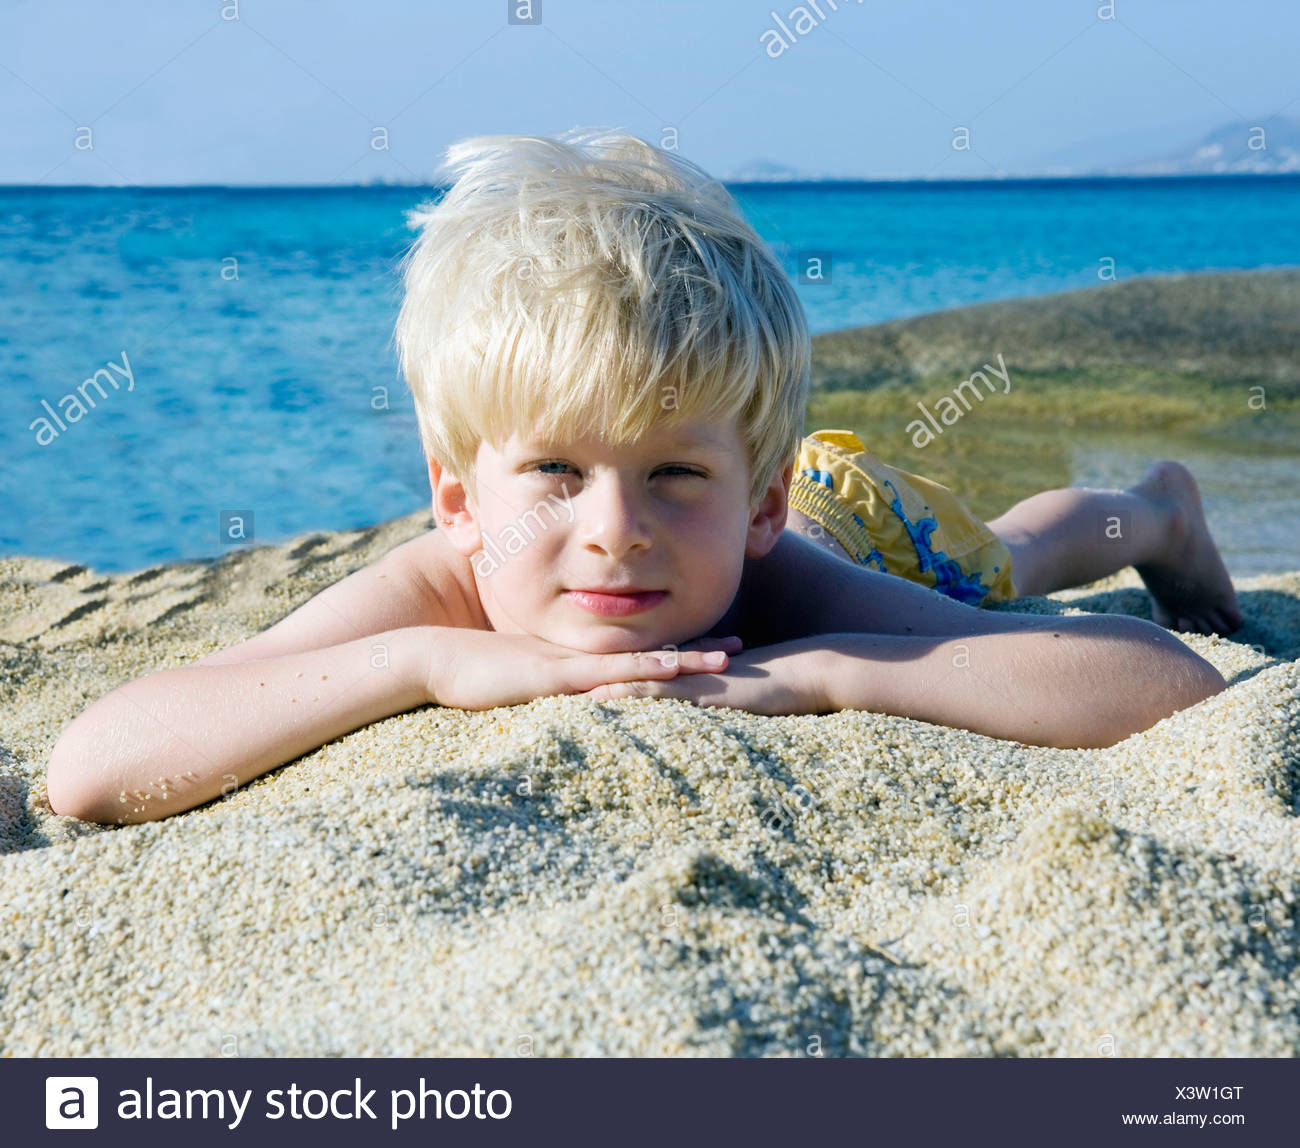 Young boy lying in the sand at the beach. Stock Photo